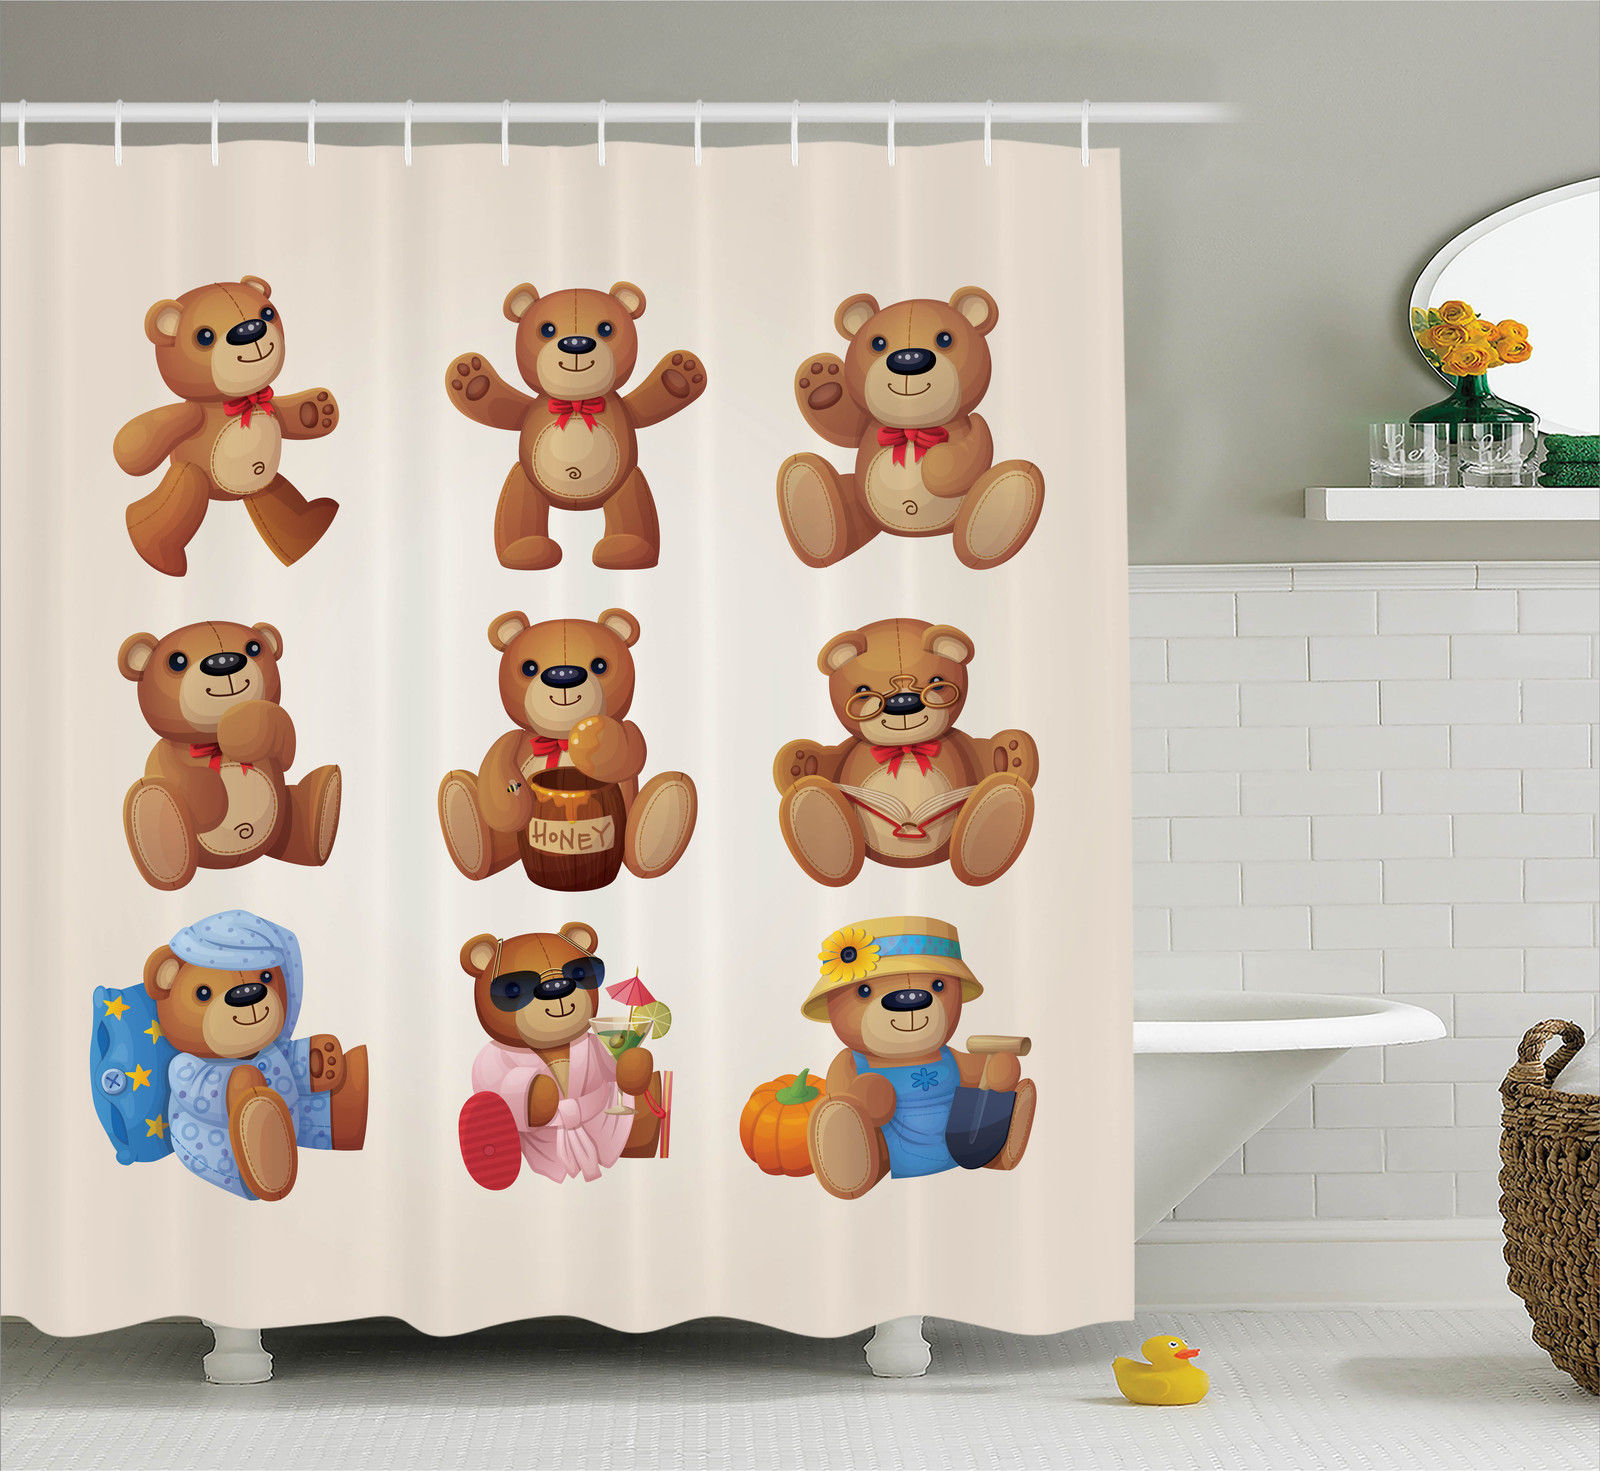 Cartoon Decor Shower Curtain Set, Set Of Cute Happy Teddy Bears With Funny Different Faces Nostalgic Style Kids Decor, Bathroom Accessories, 69W X 70L Inches, By Ambesonne